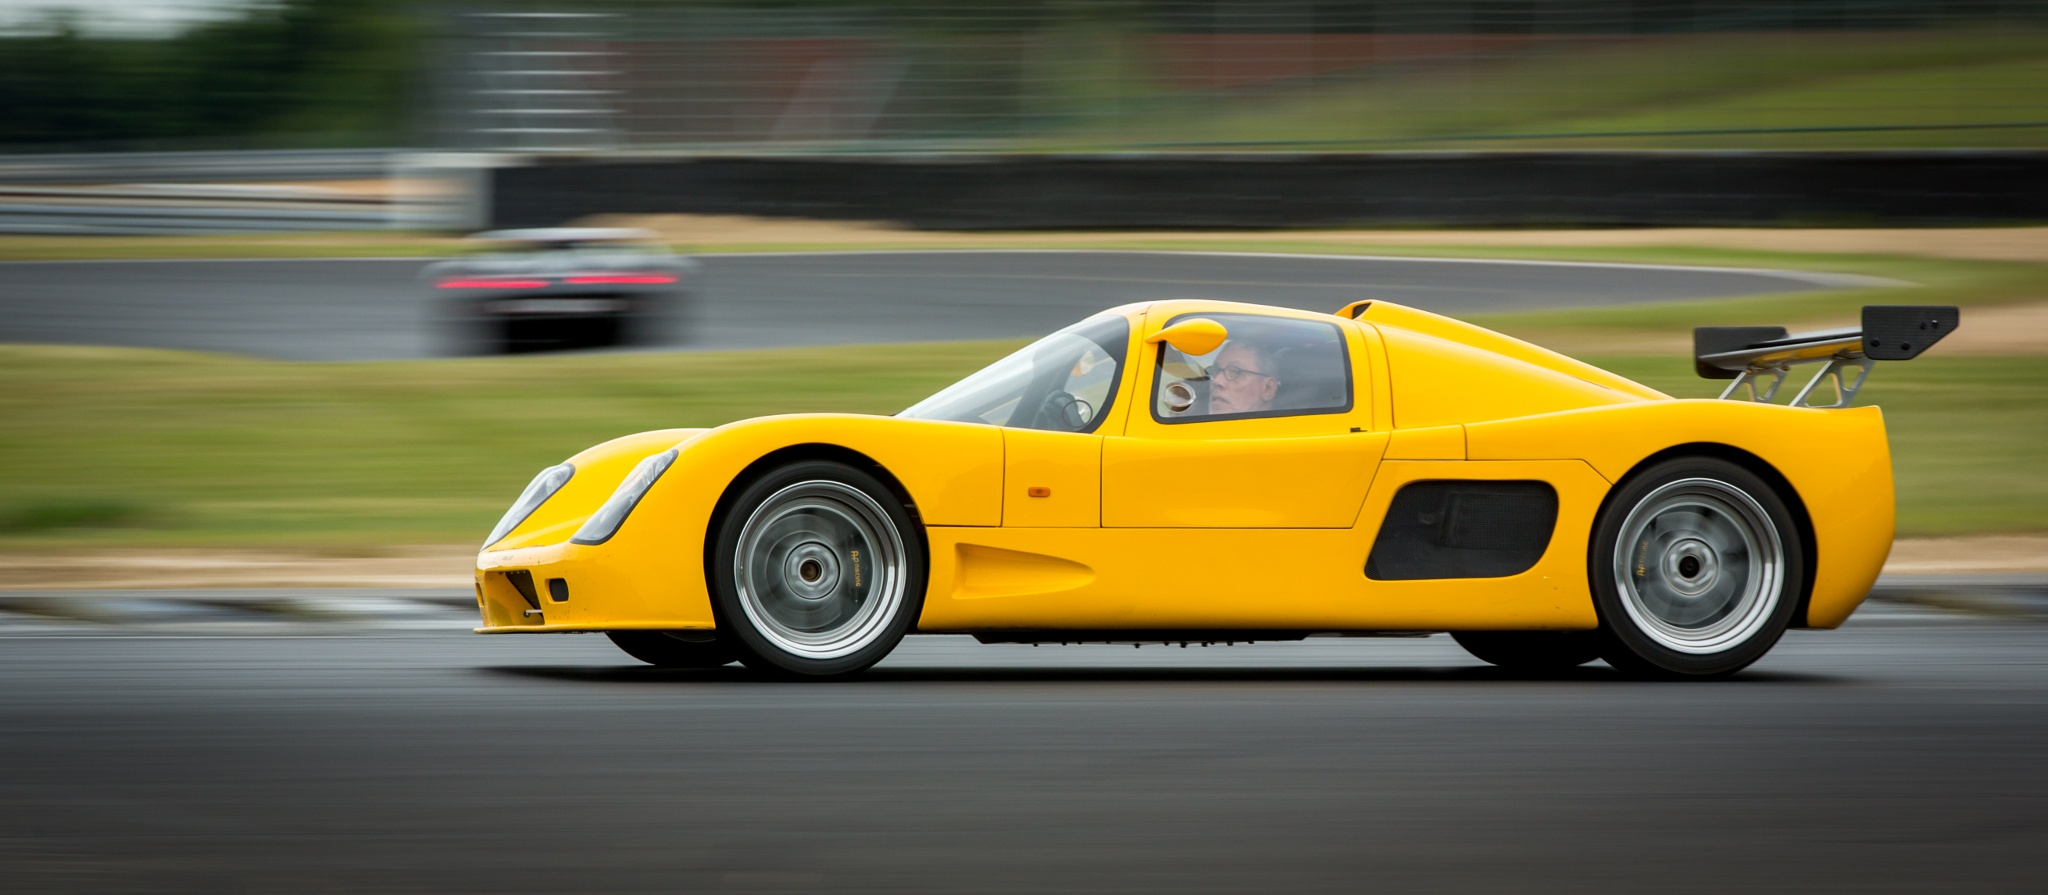 ULTIMA CAN AM  by Flemming Heiberg